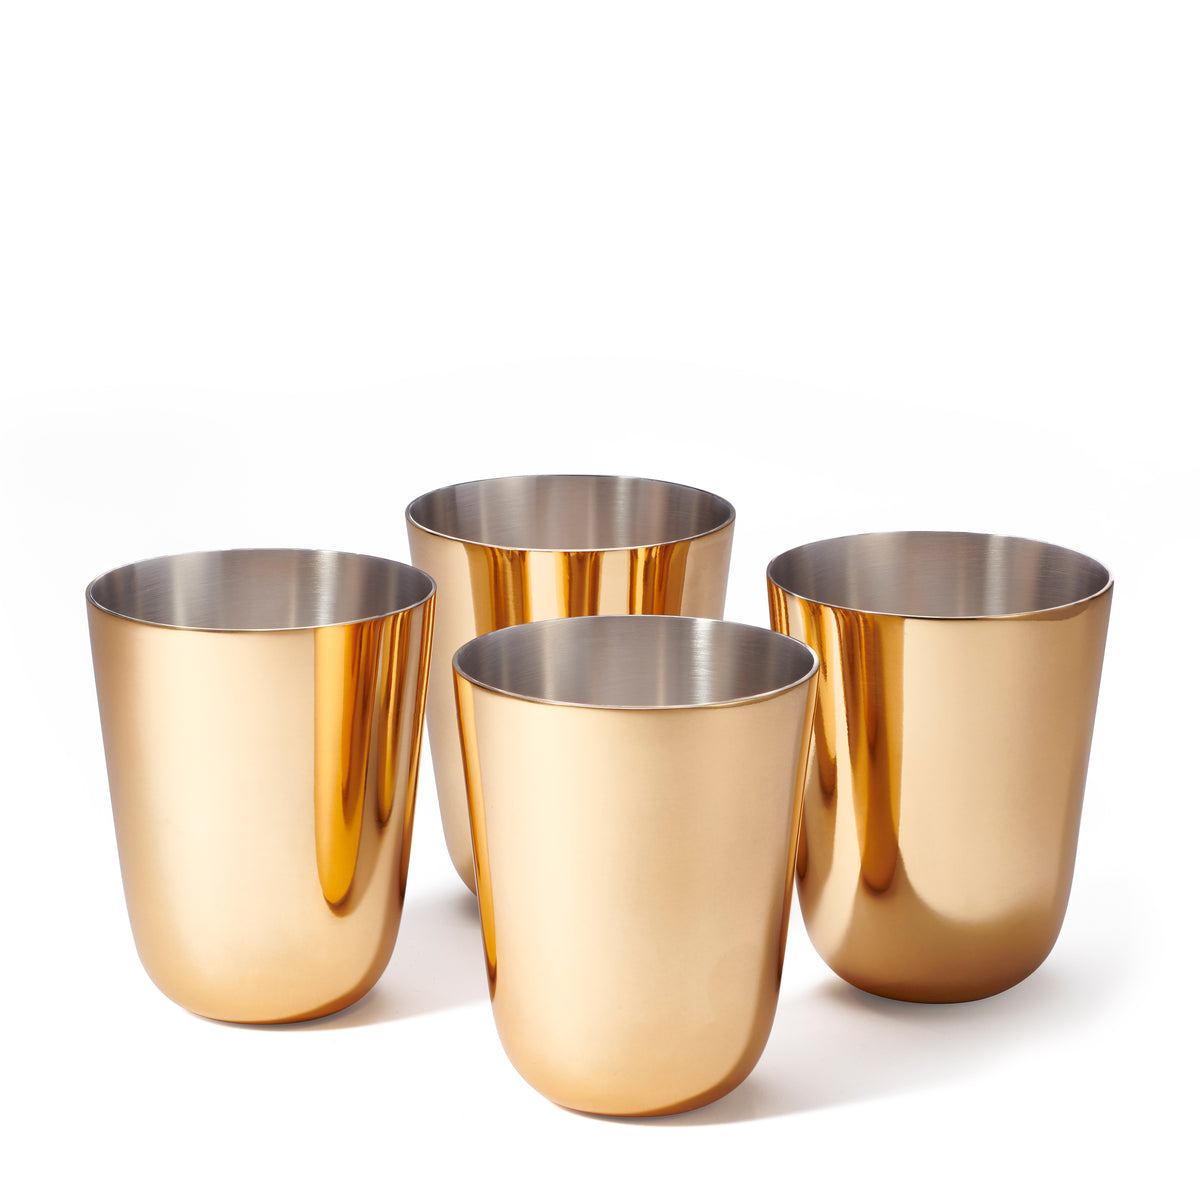 Fausto Julep Cups, Set of 4